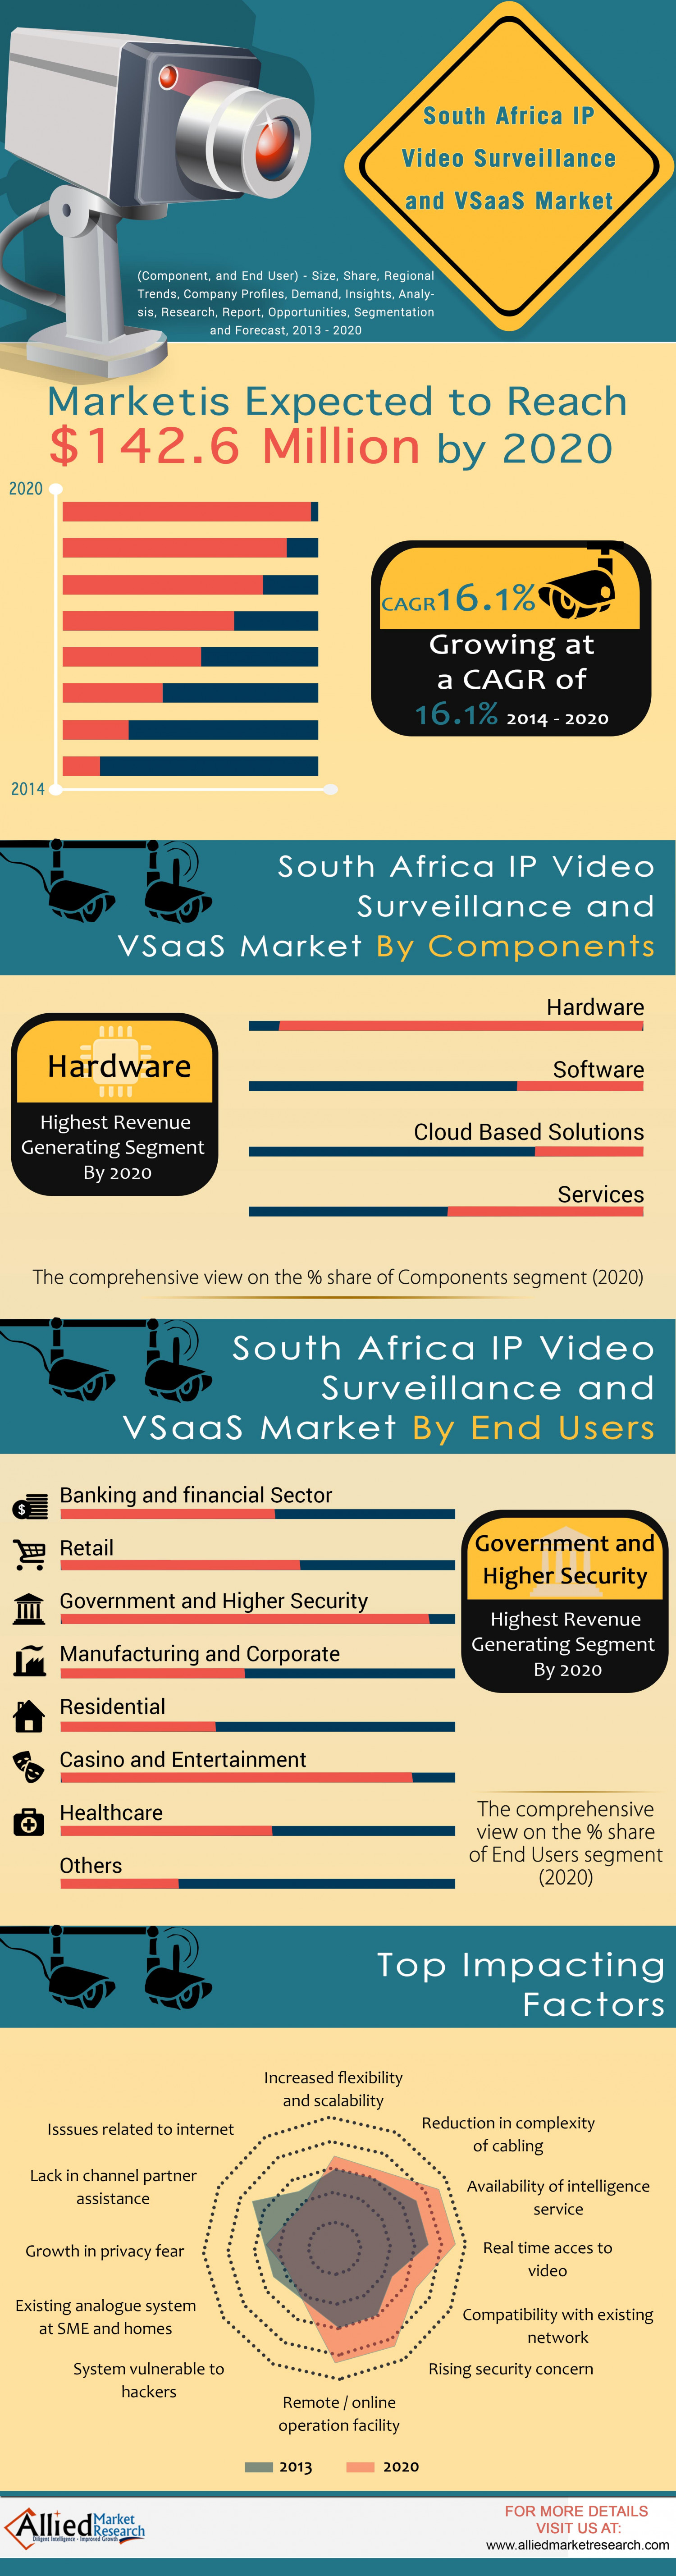 South Africa IP Video Surveillance and VSaaS Market (Component, and End User) - Size, Share, Regional Trends, Company Profiles, Demand, Insights, Analysis, Research, Report, Opportunities, Segmentation and Forecast, 2013 - 2020 Infographic